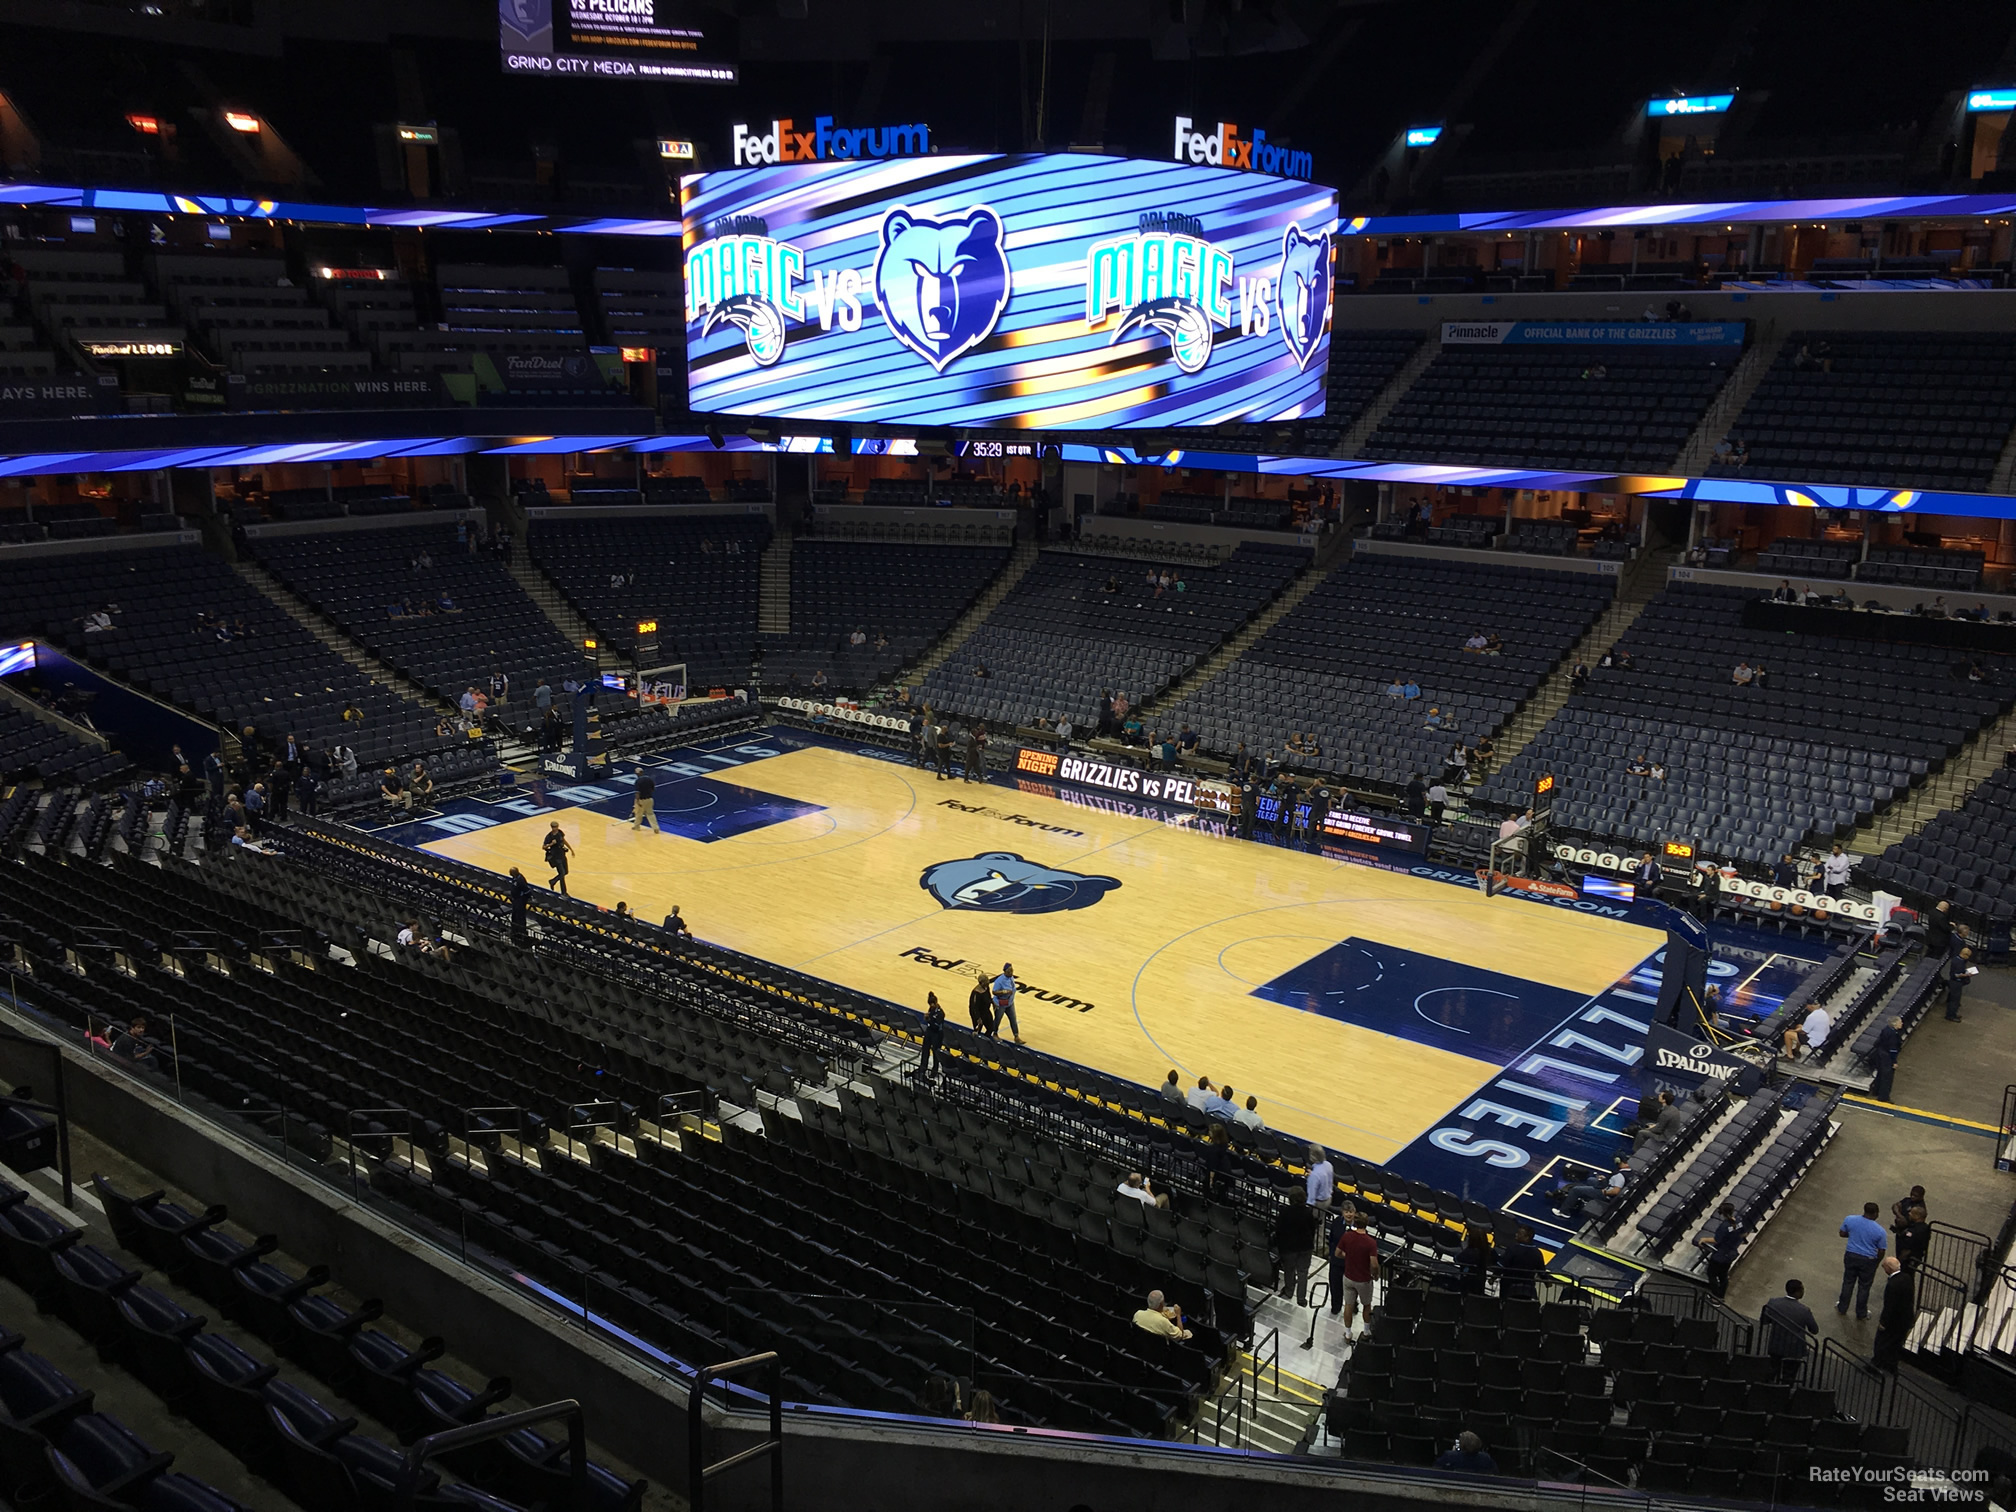 Fedexforum Seating Chart Memphis Tigers Elcho Table